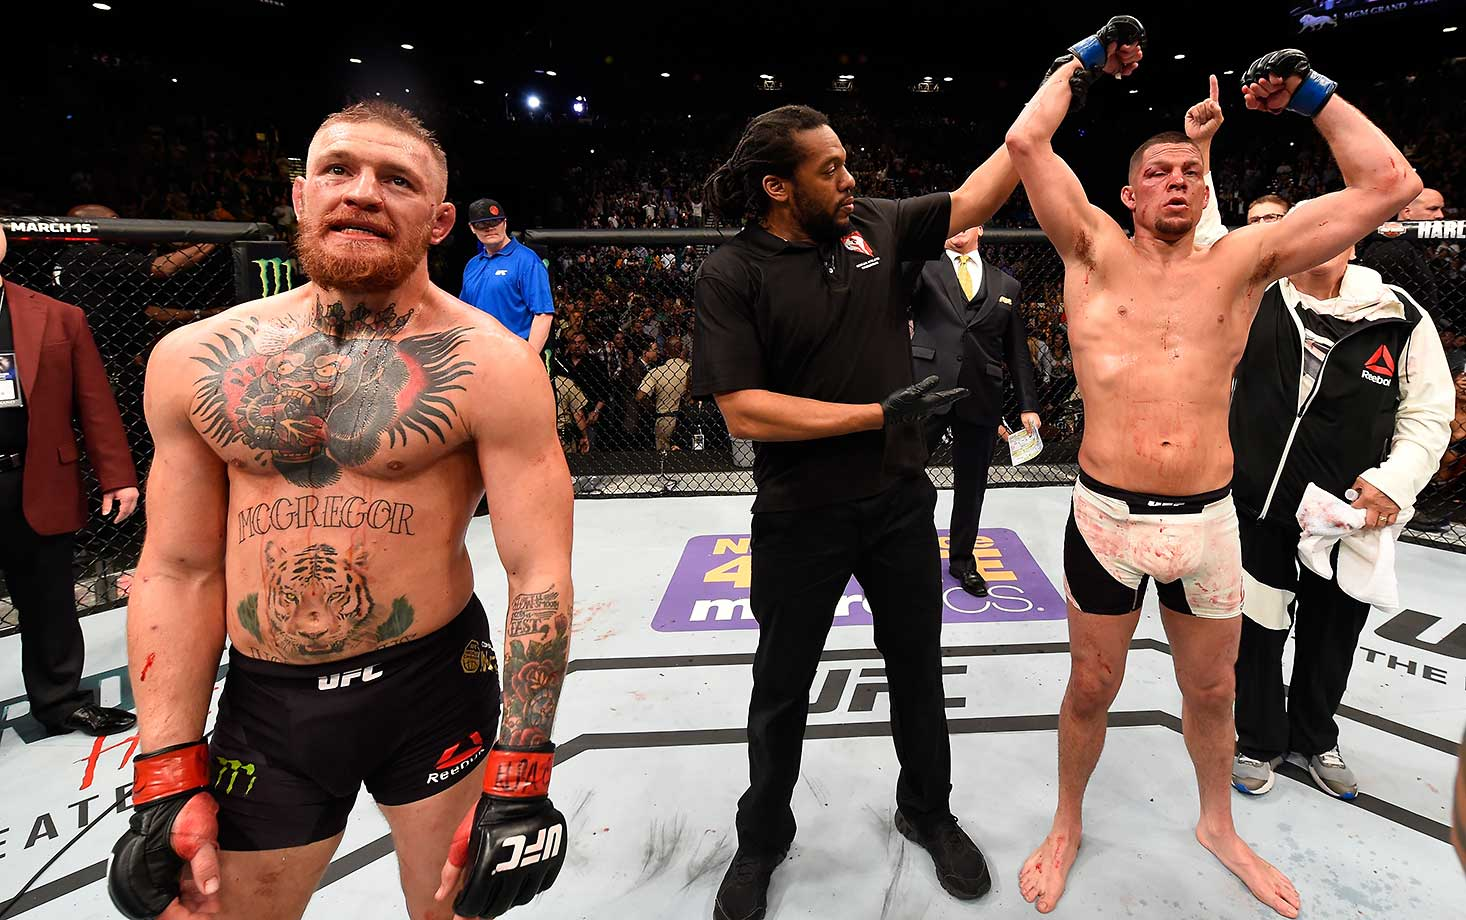 Nate Diaz reacts to his victory over Conor McGregor of Ireland in their welterweight bout at UFC 196.